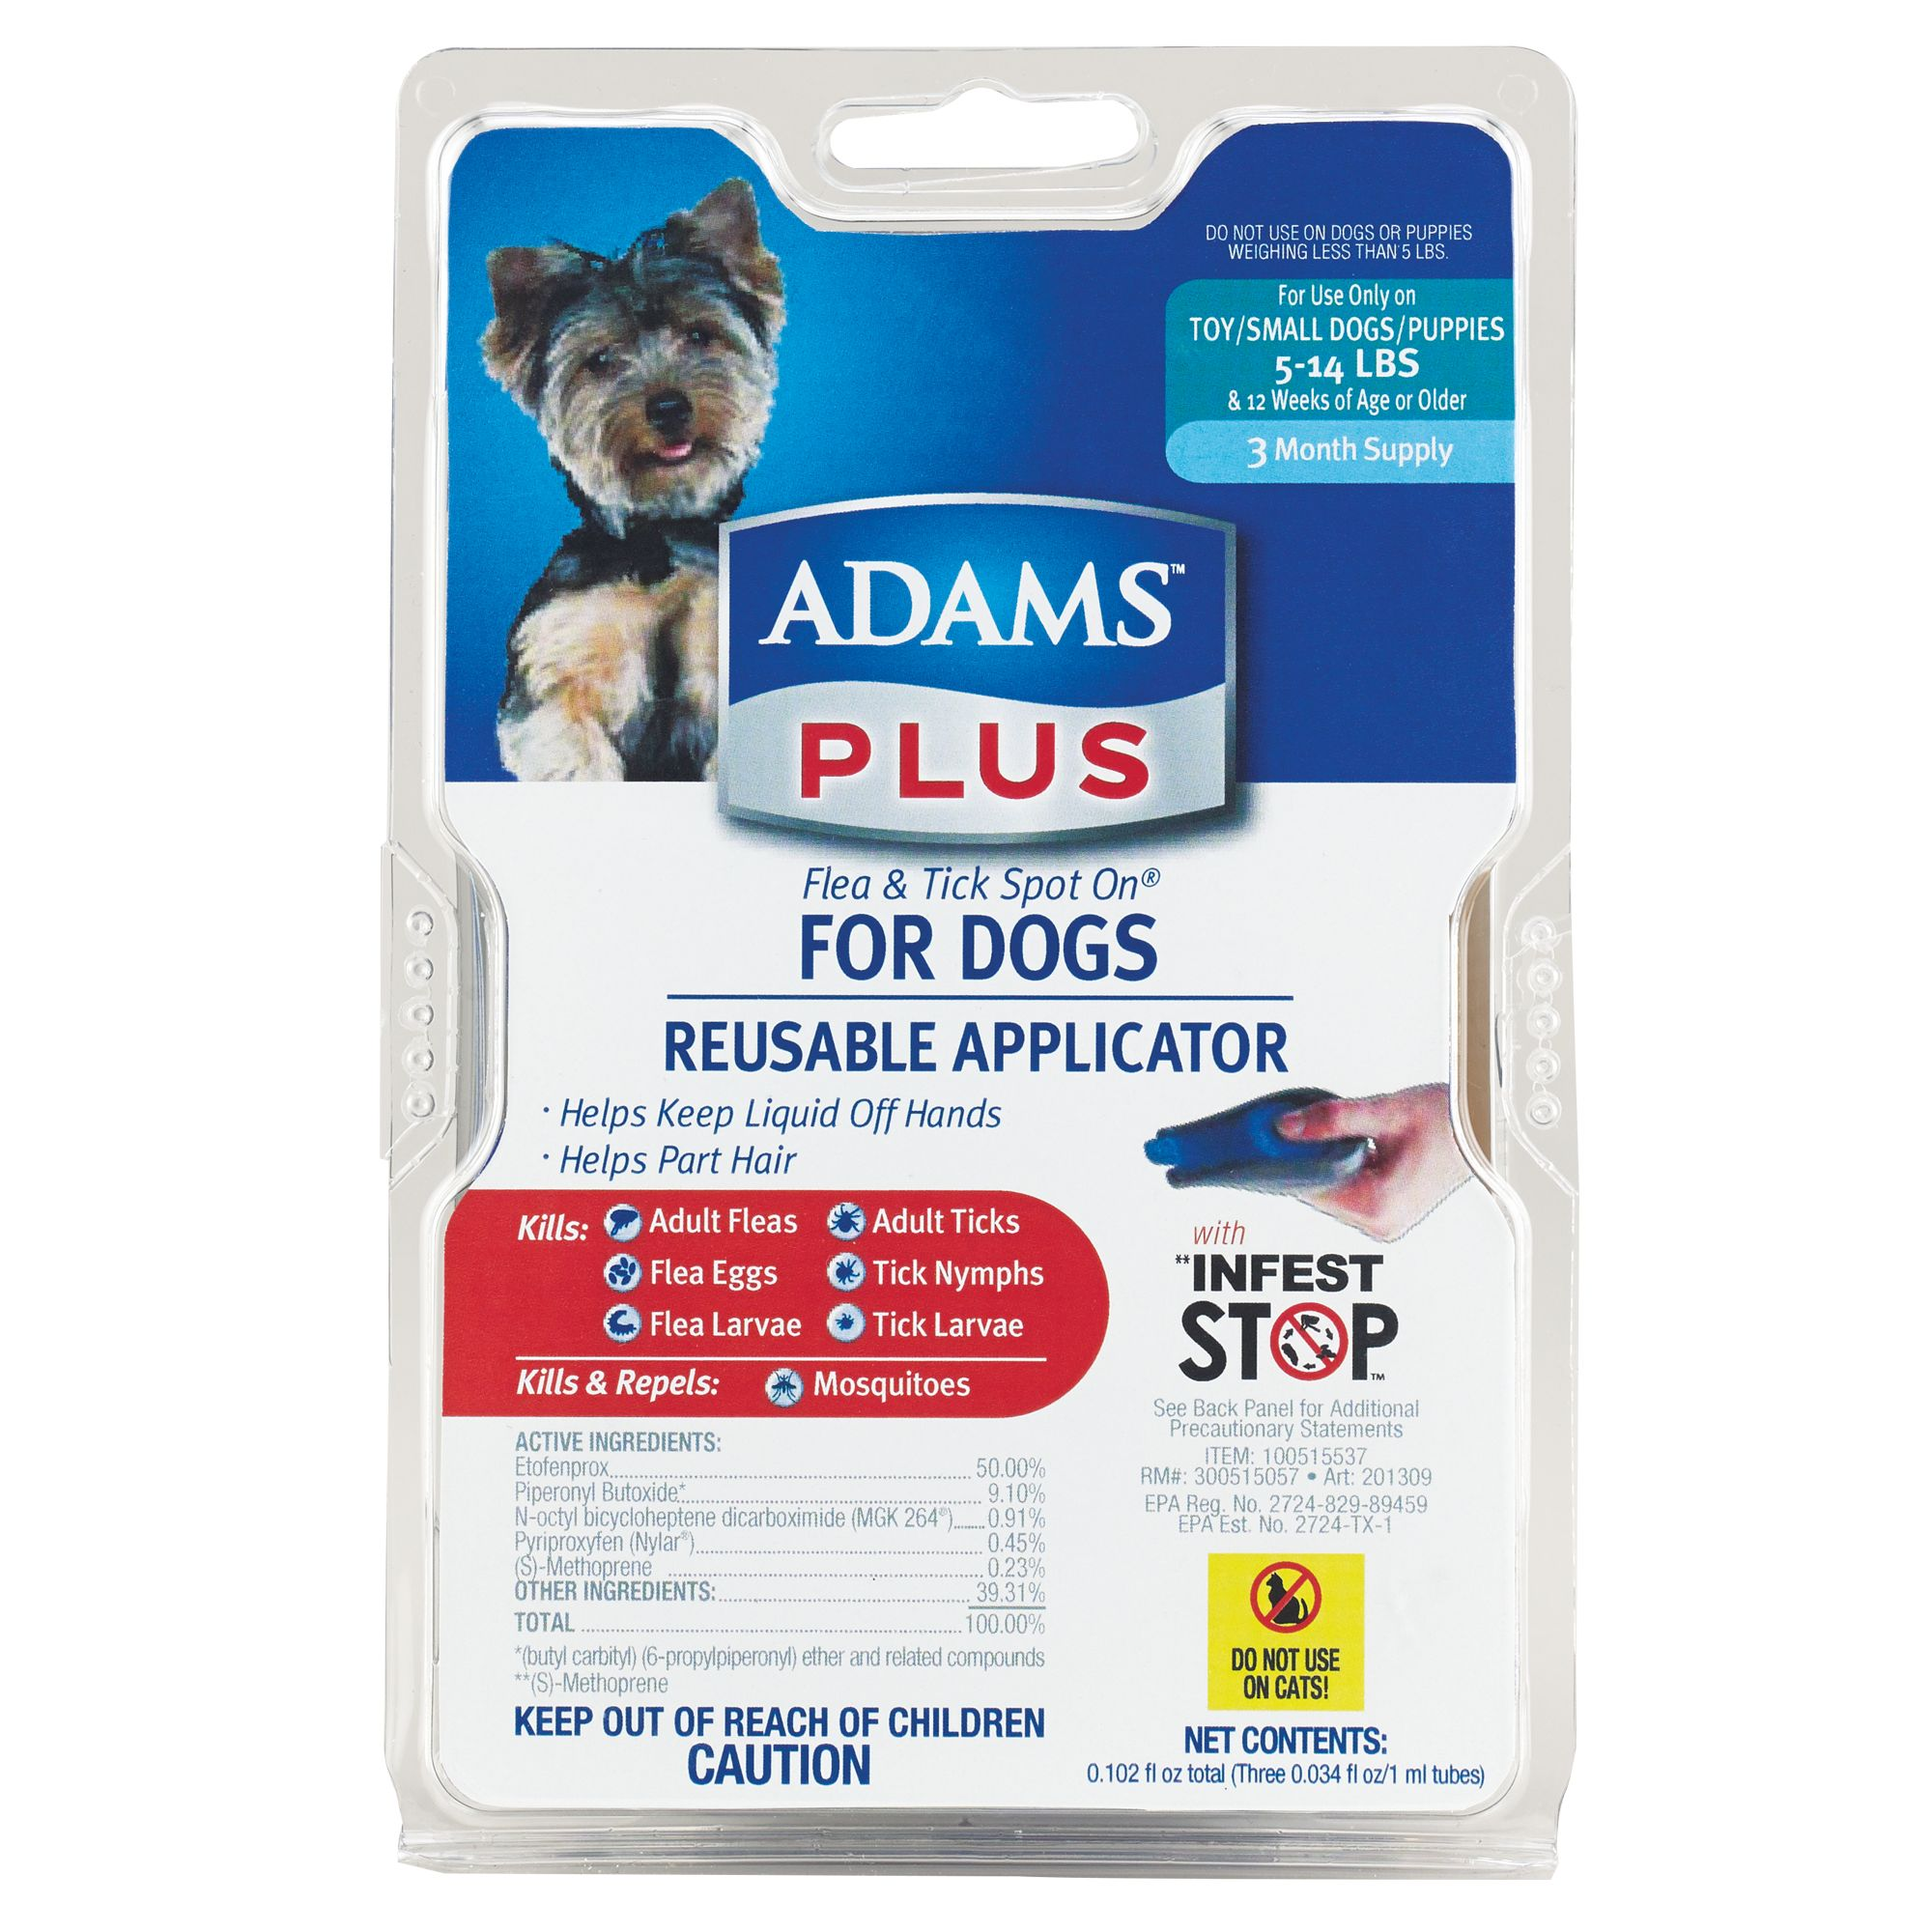 Adams Plus 5 14lb Dog Flea And Tick Protection Size 5 14 Lbs